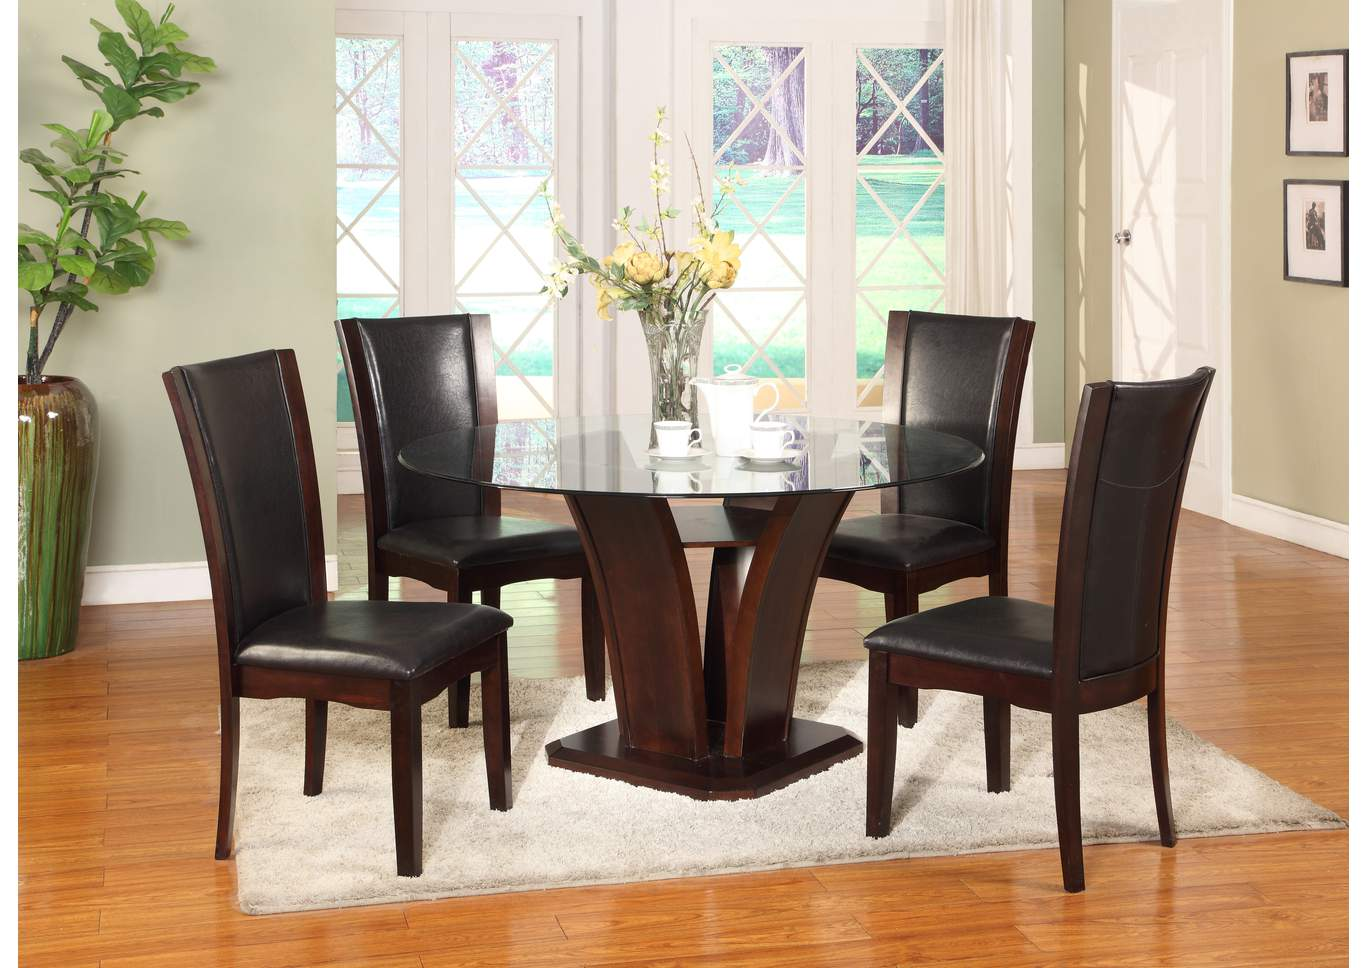 Ware House Furniture Camelia Glass Round Dining Room Table